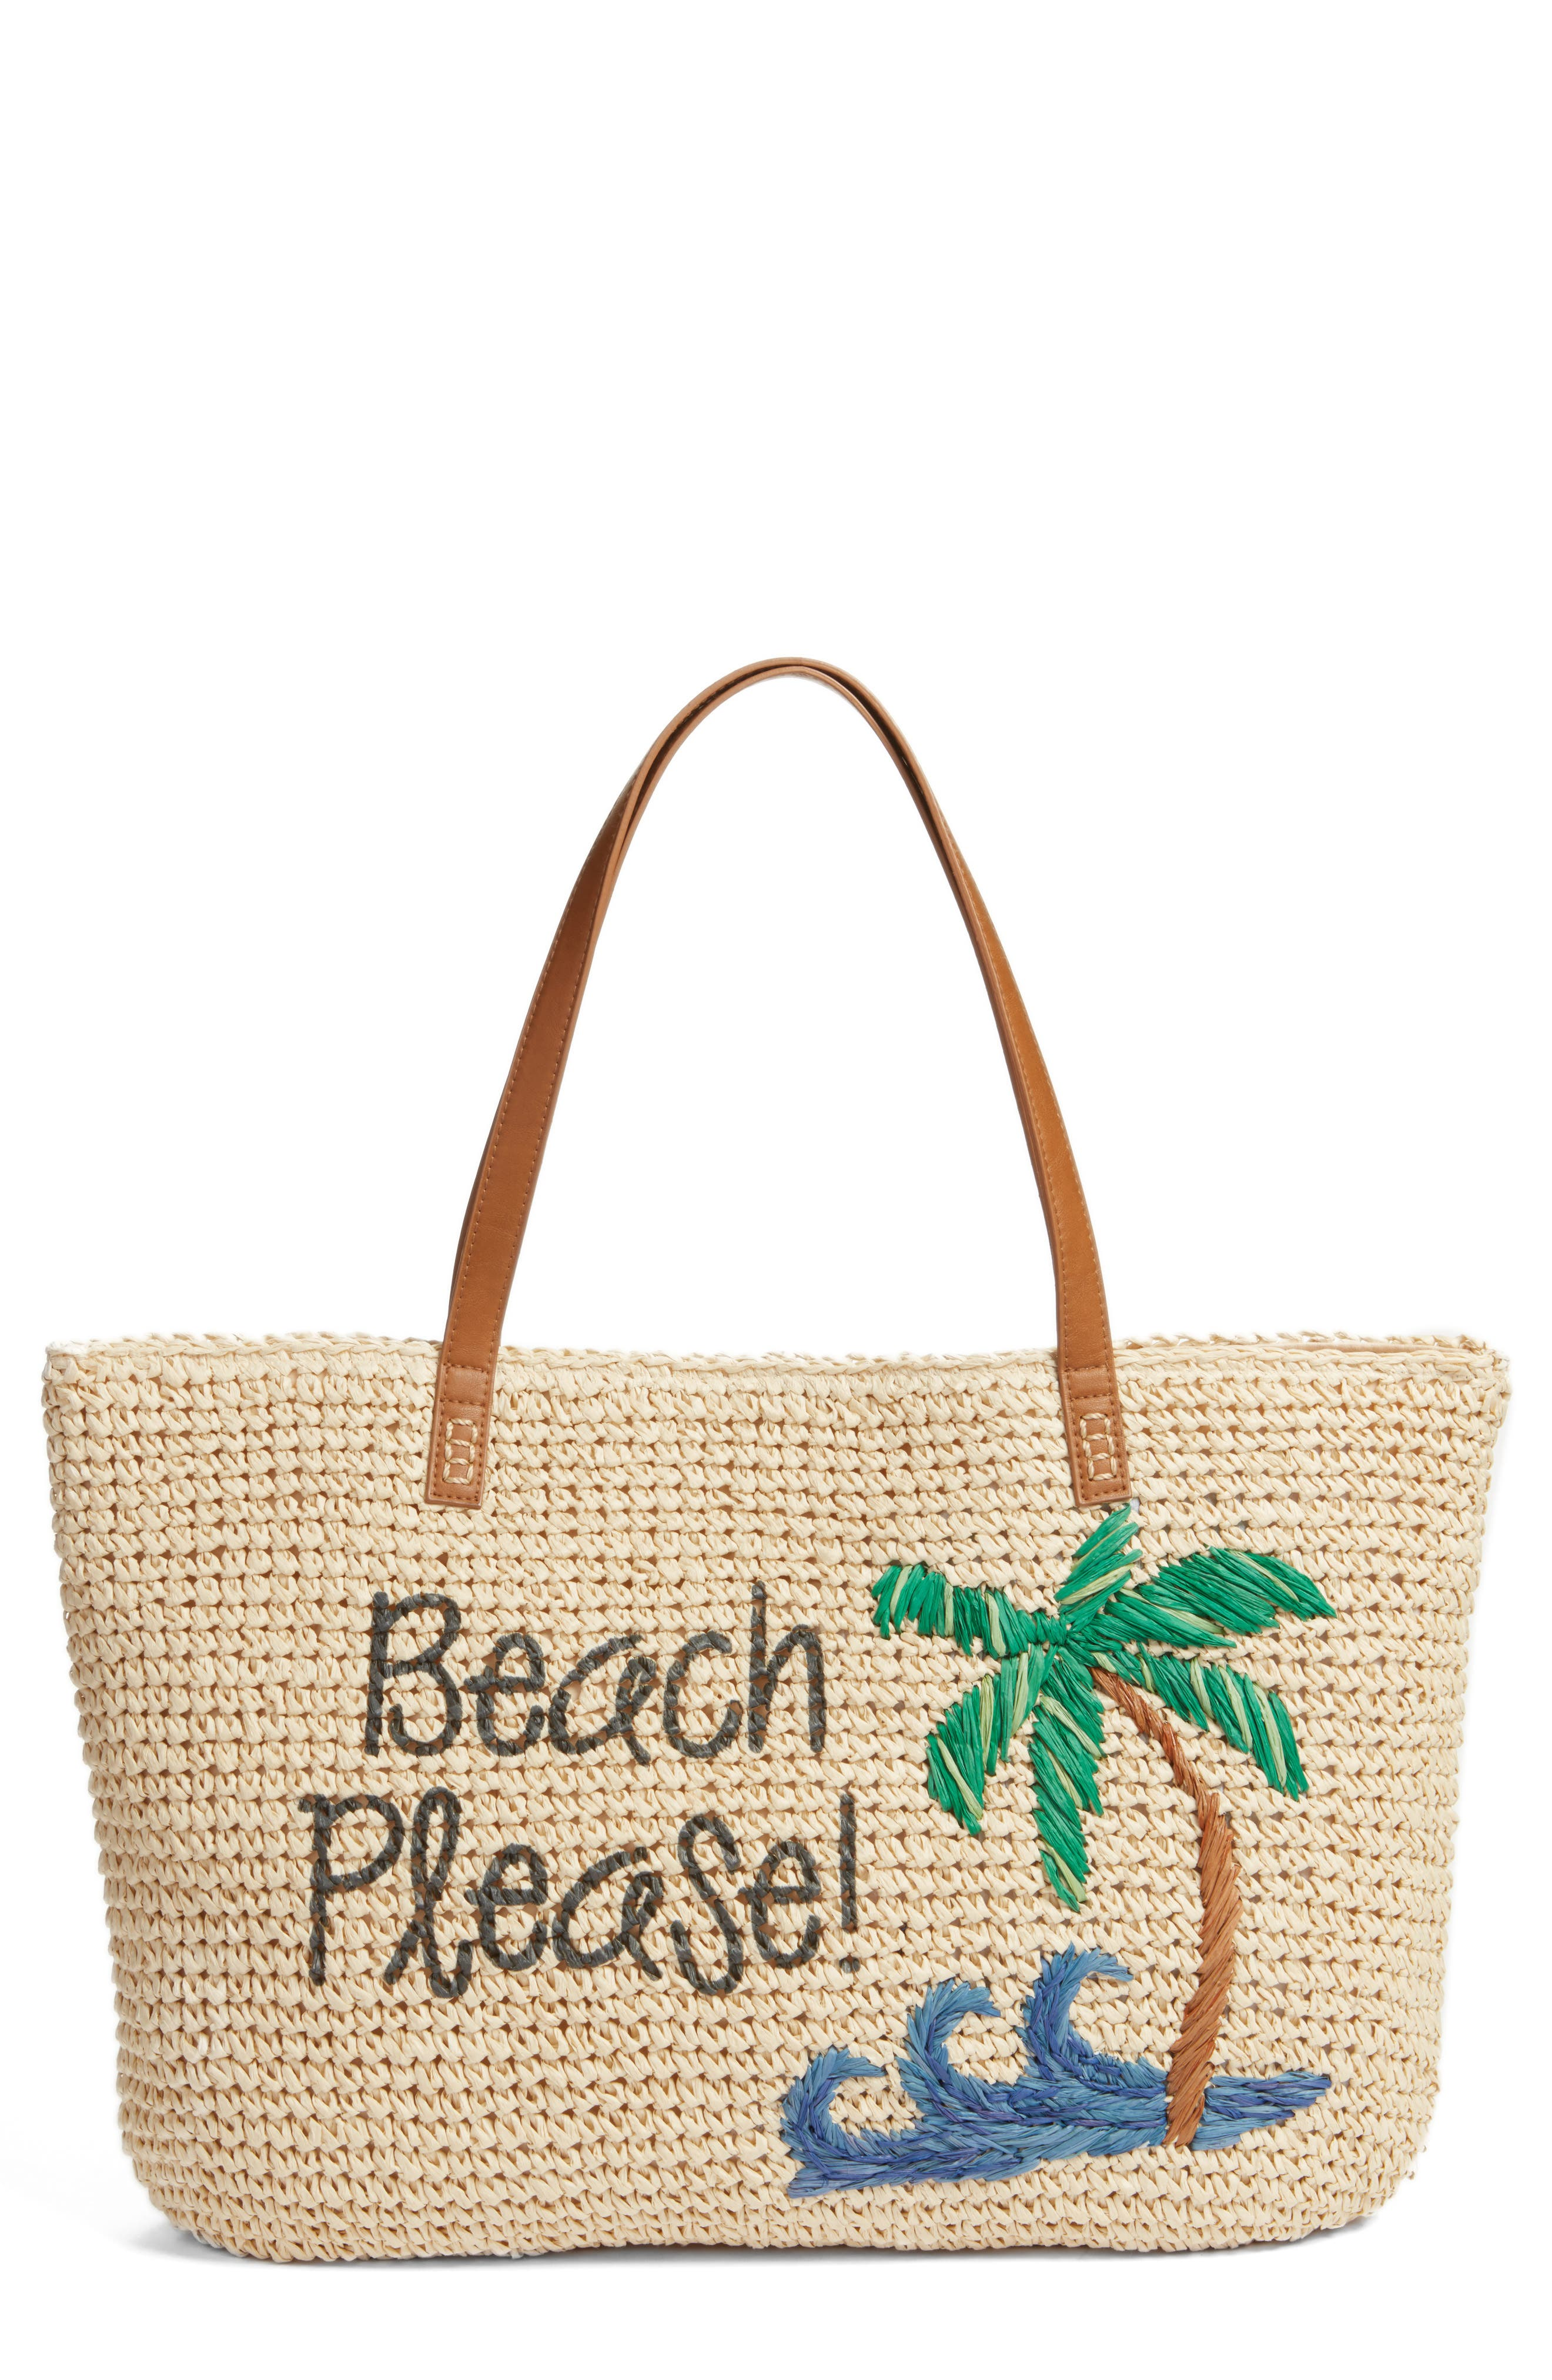 Alternate Image 1 Selected - Nordstrom Beach Please Tote